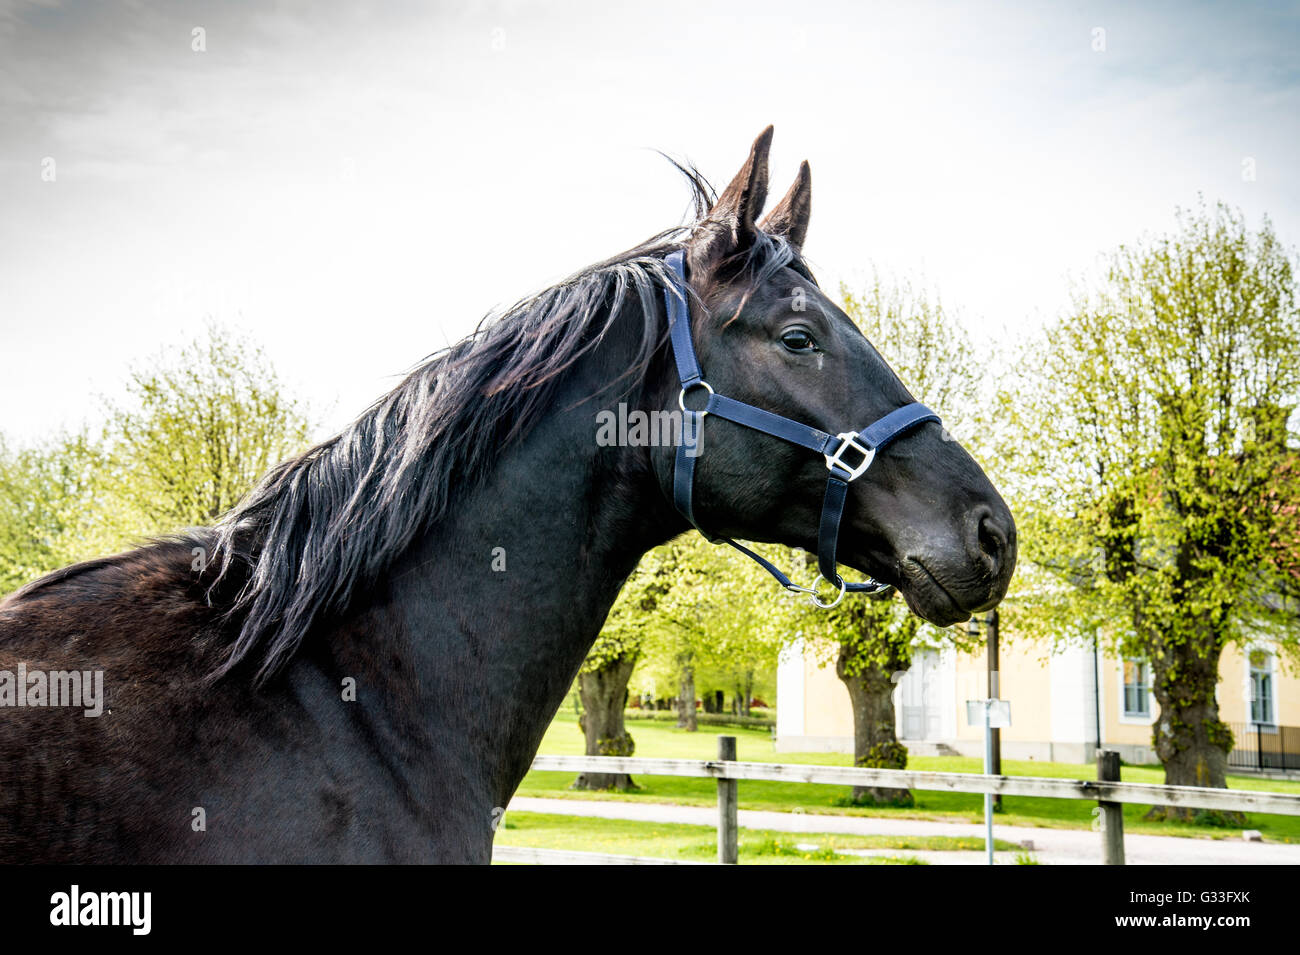 Stallion - Stock Image